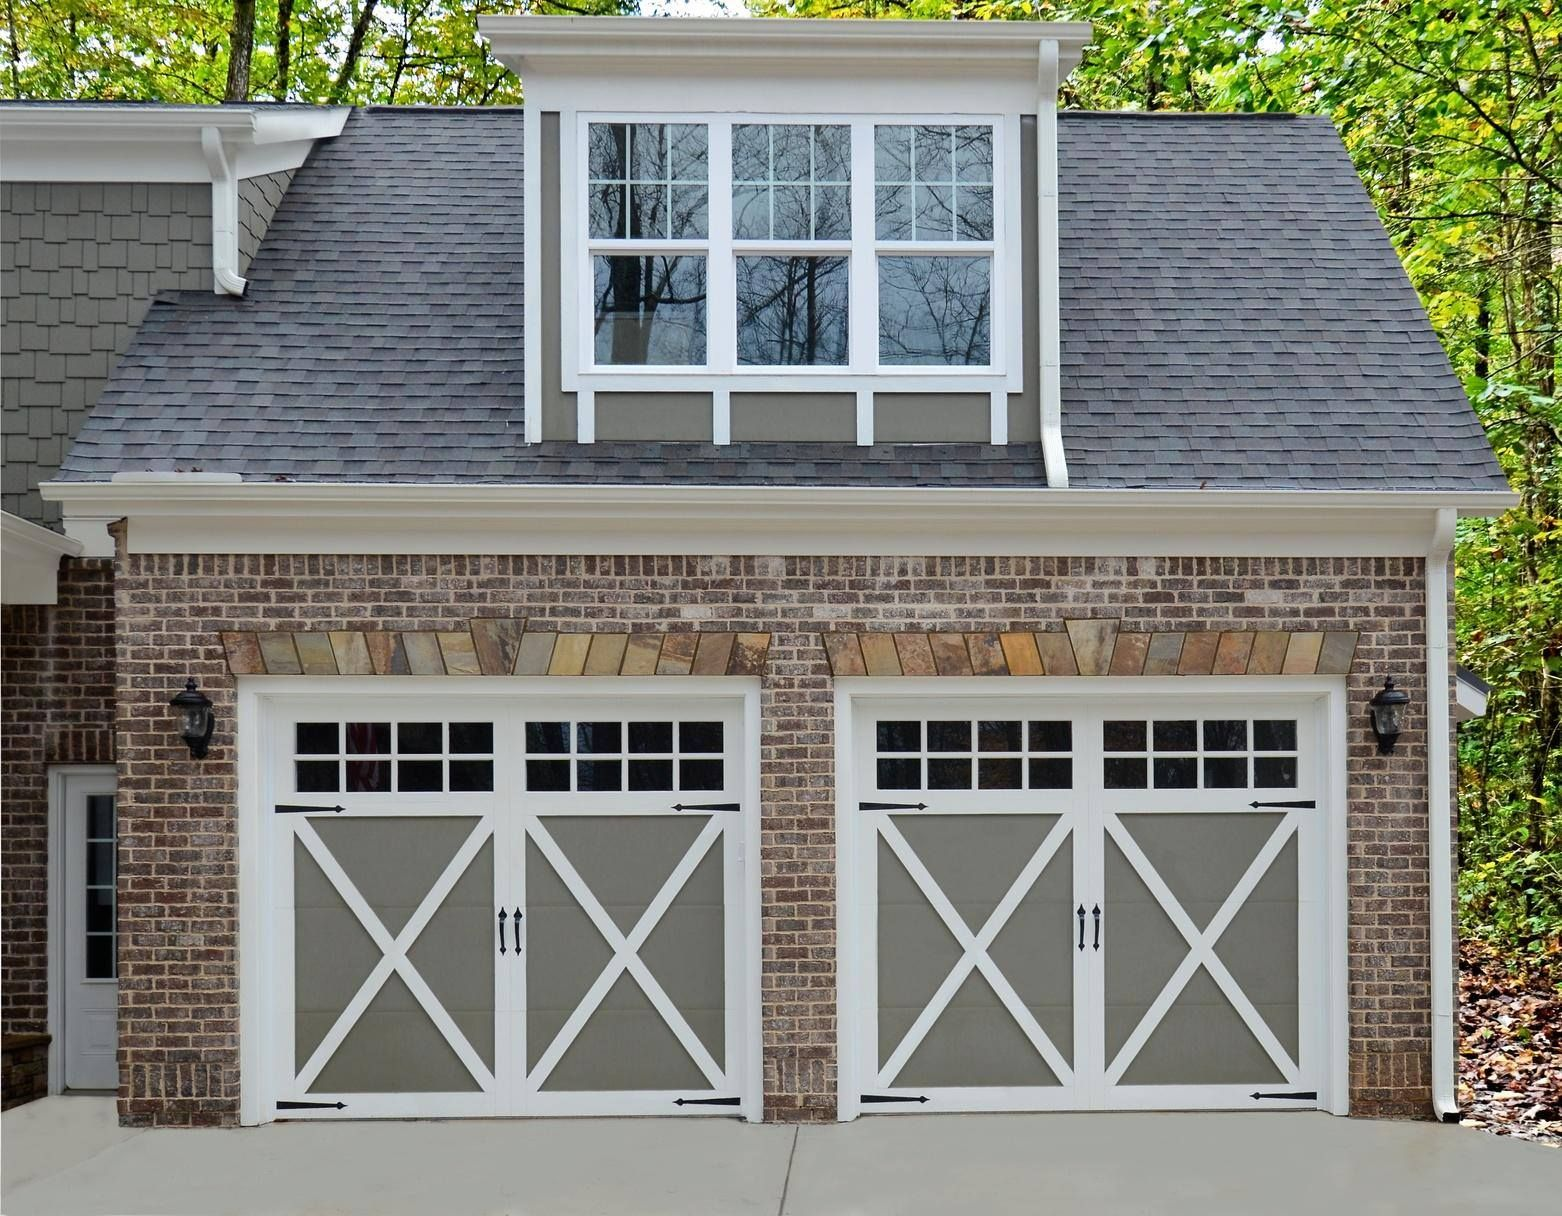 Classica northampton garage door white 9 x 8 no windows - Yes You Can Paint Your Garage Door To Match Your Exterior Paint Color Scheme